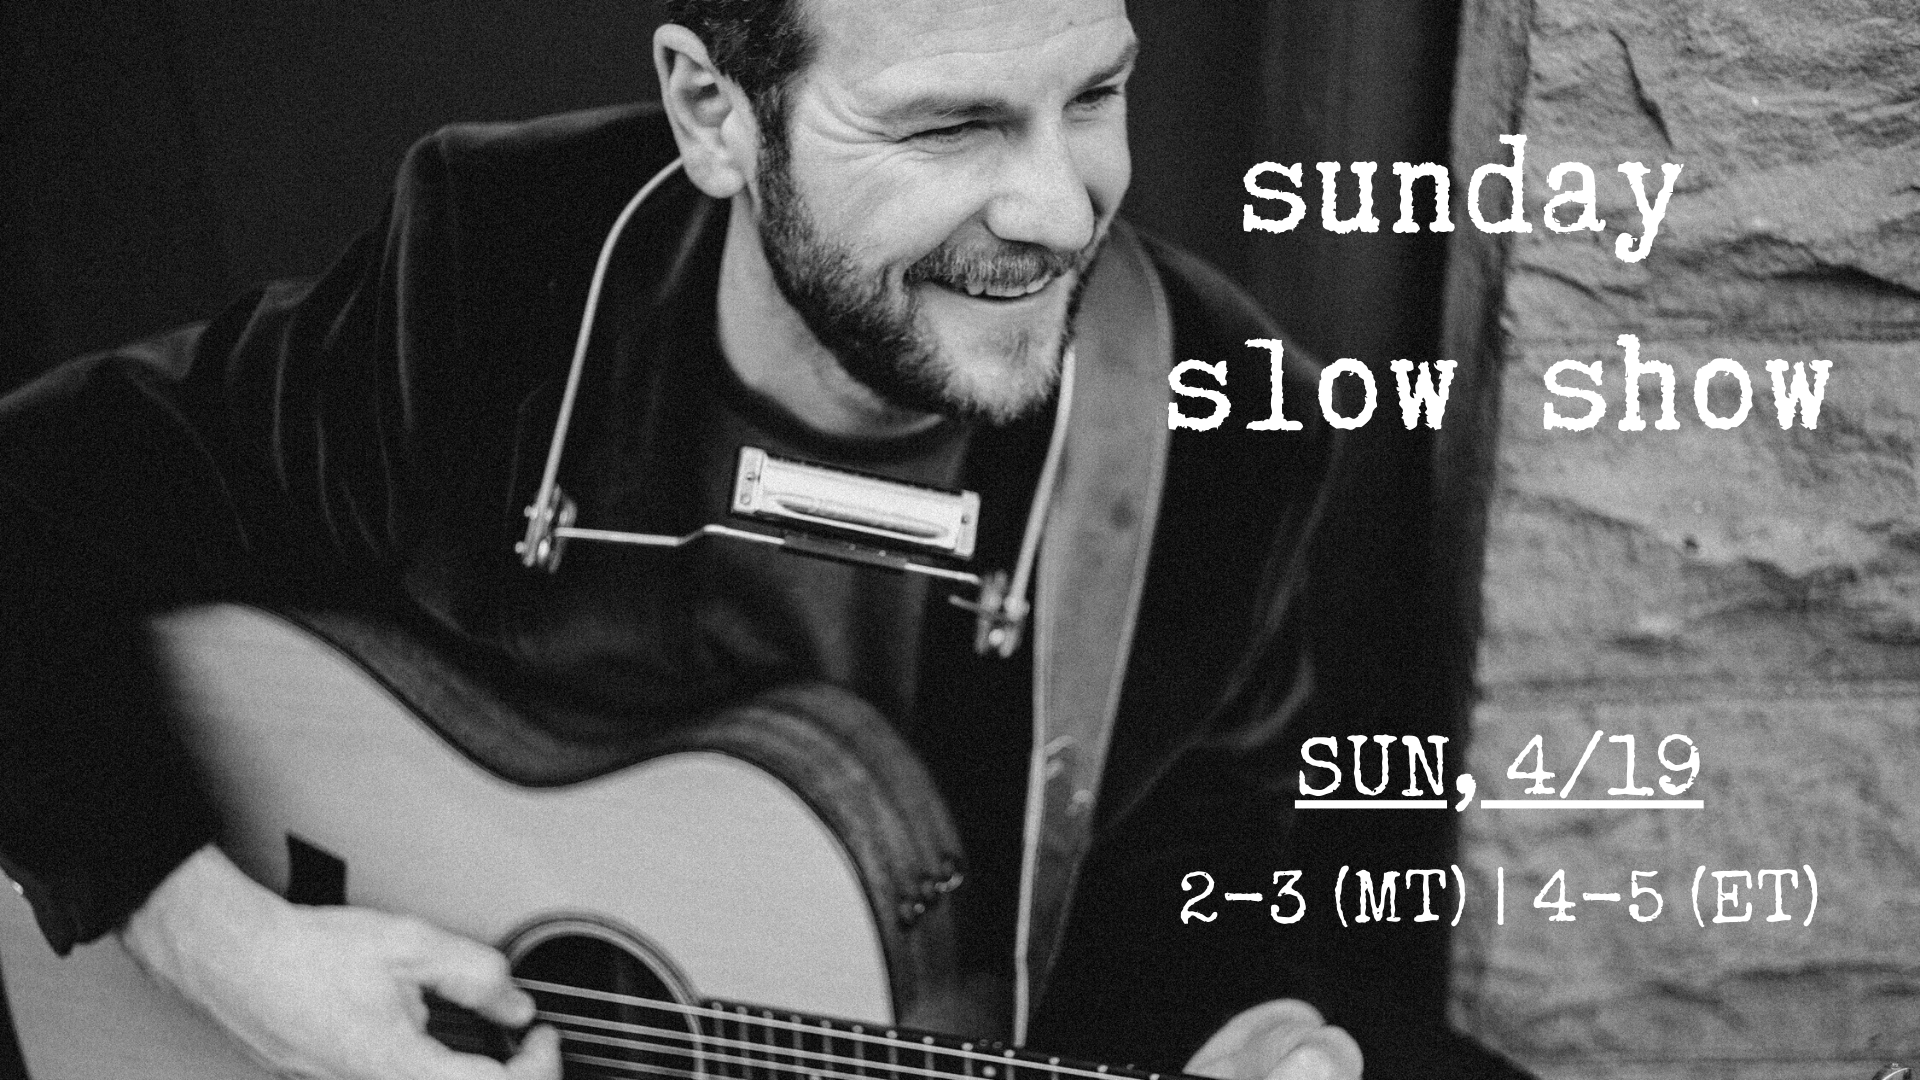 Sunday Slow Show